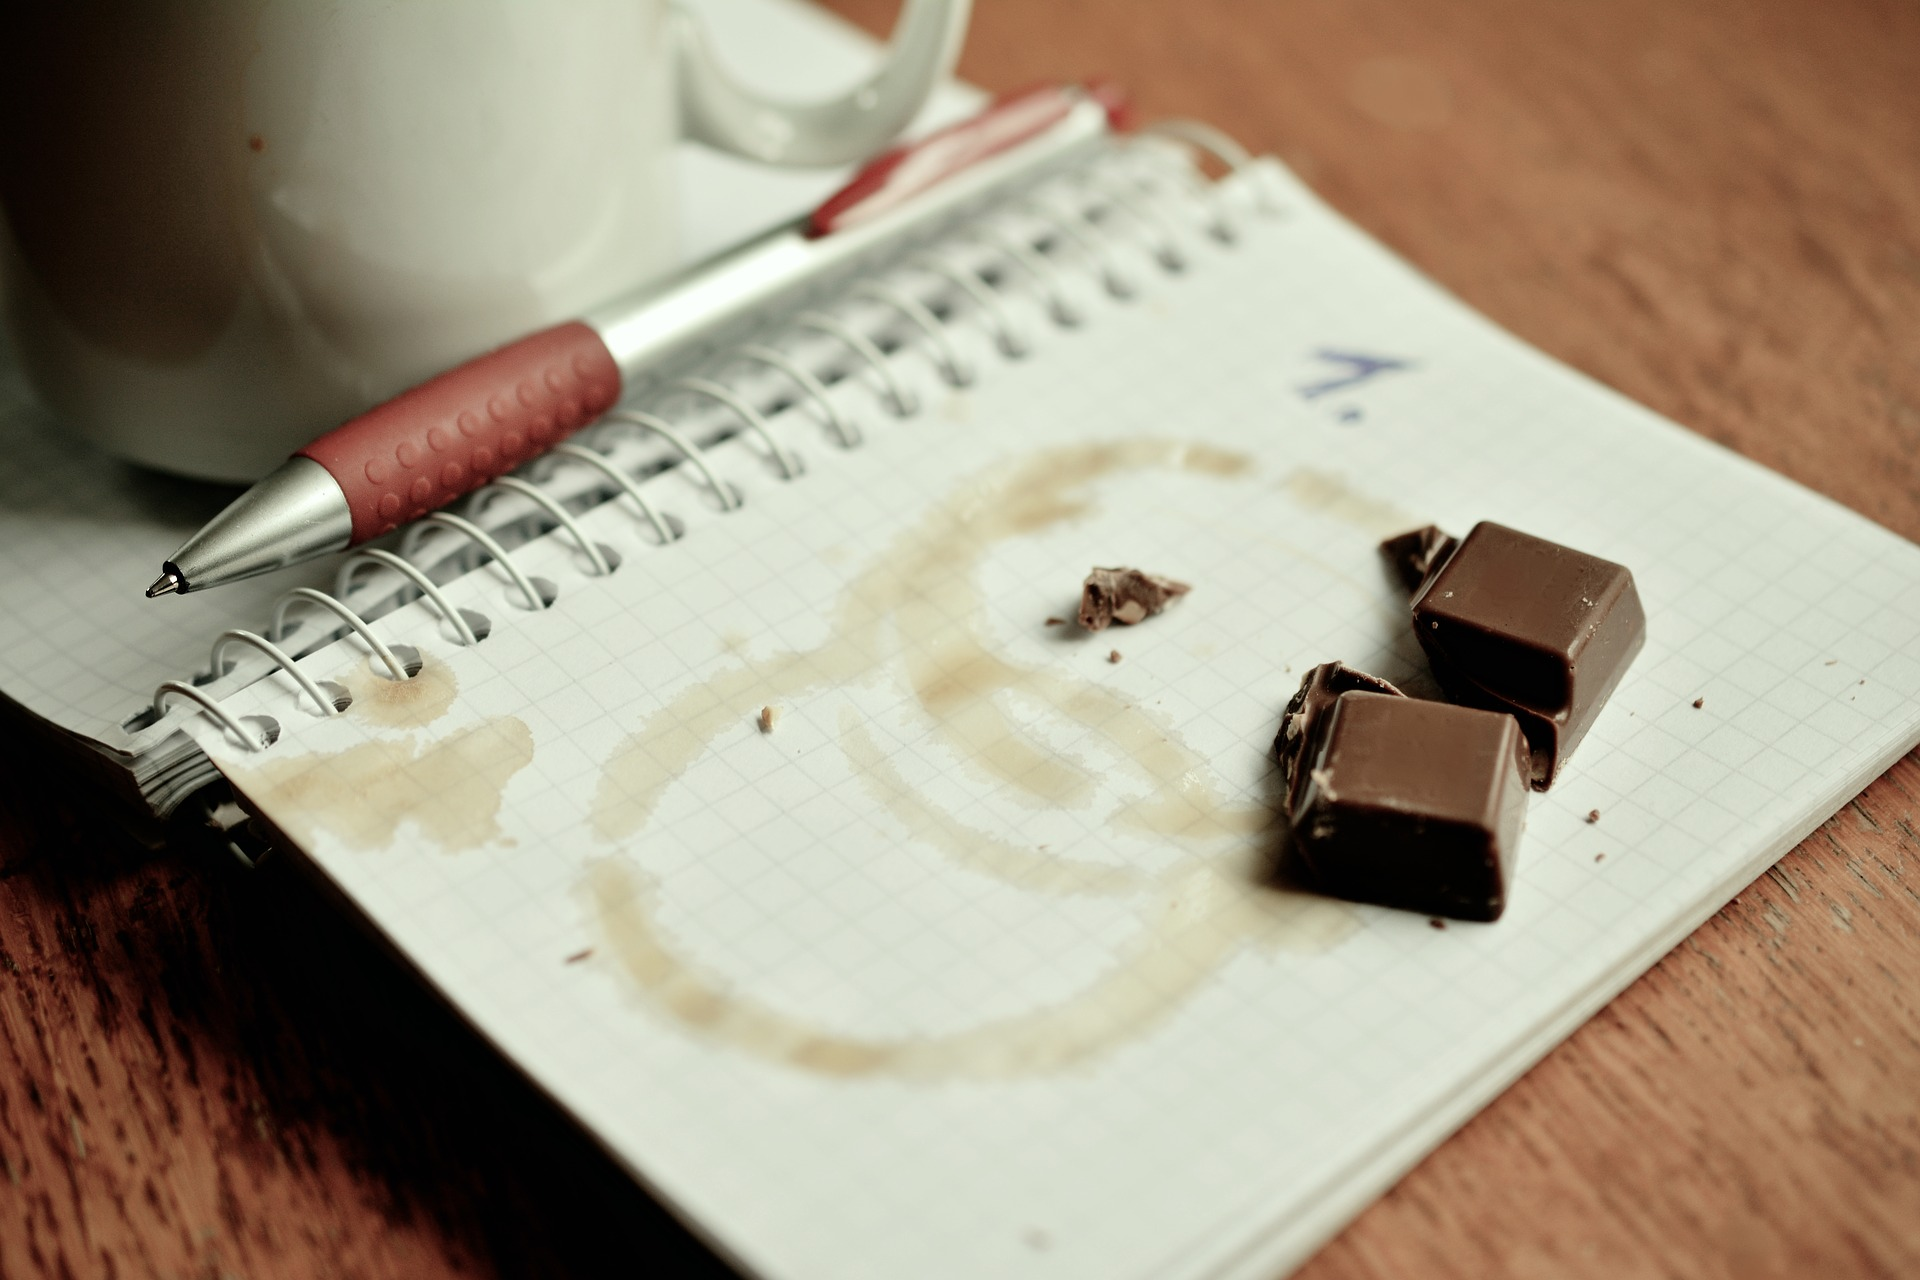 Chocolate on a notebook